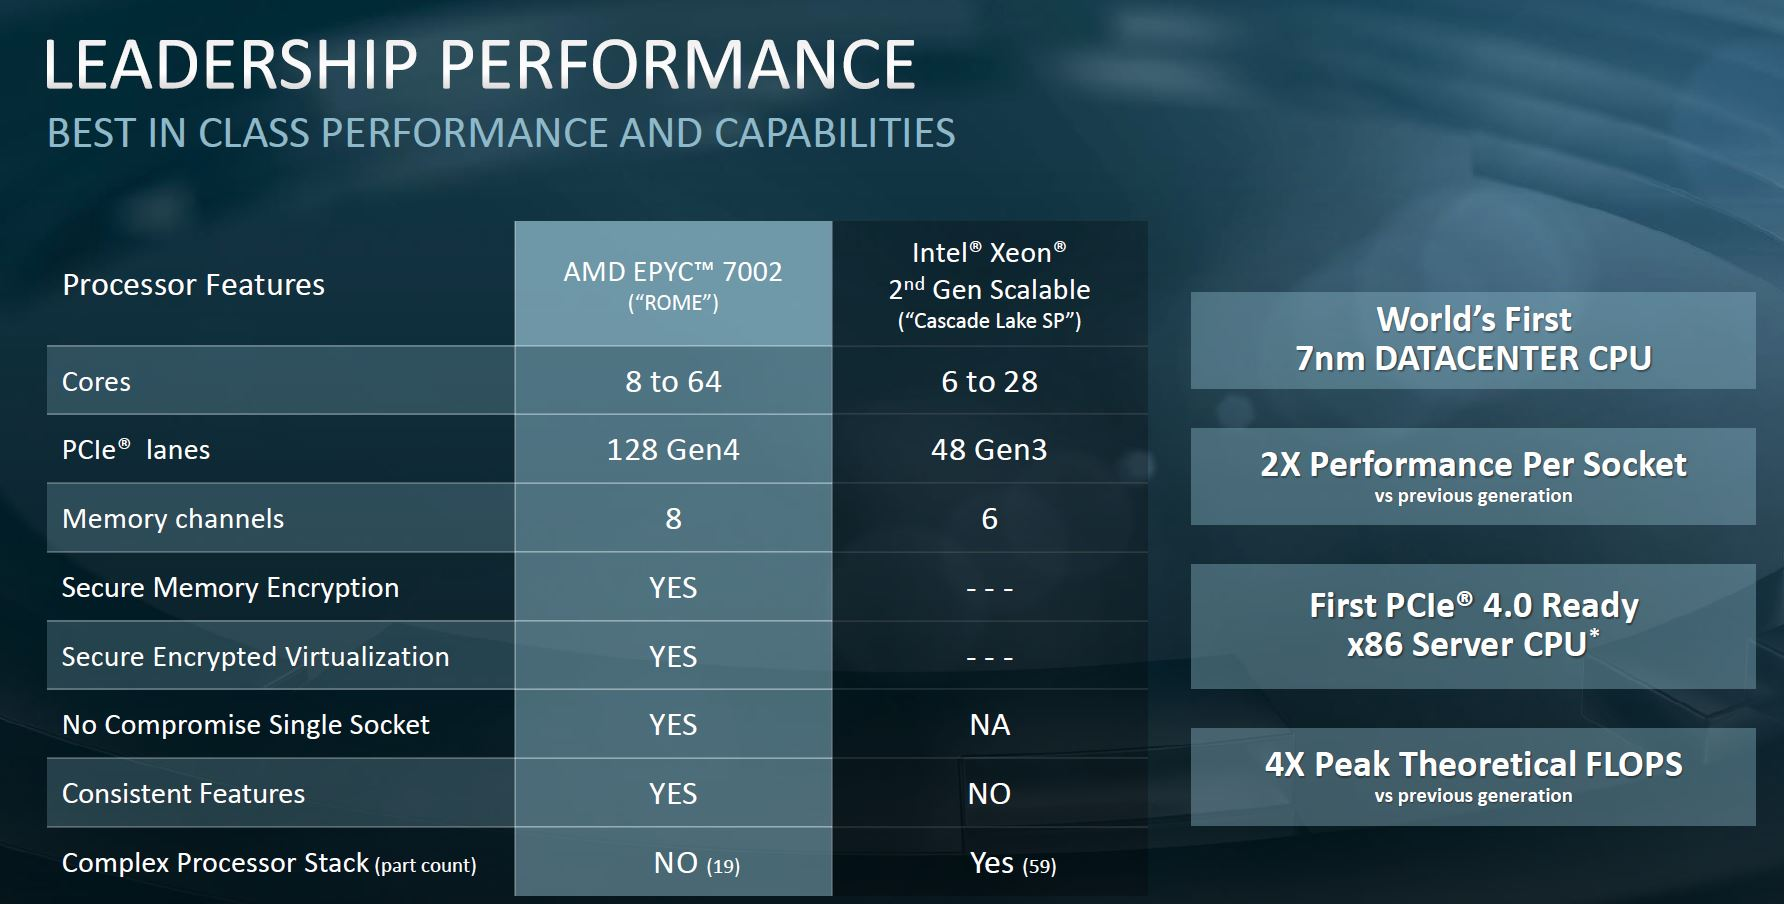 AMD EPYC 7002 V 2nd Generation Intel Xeon Scalable Comparison